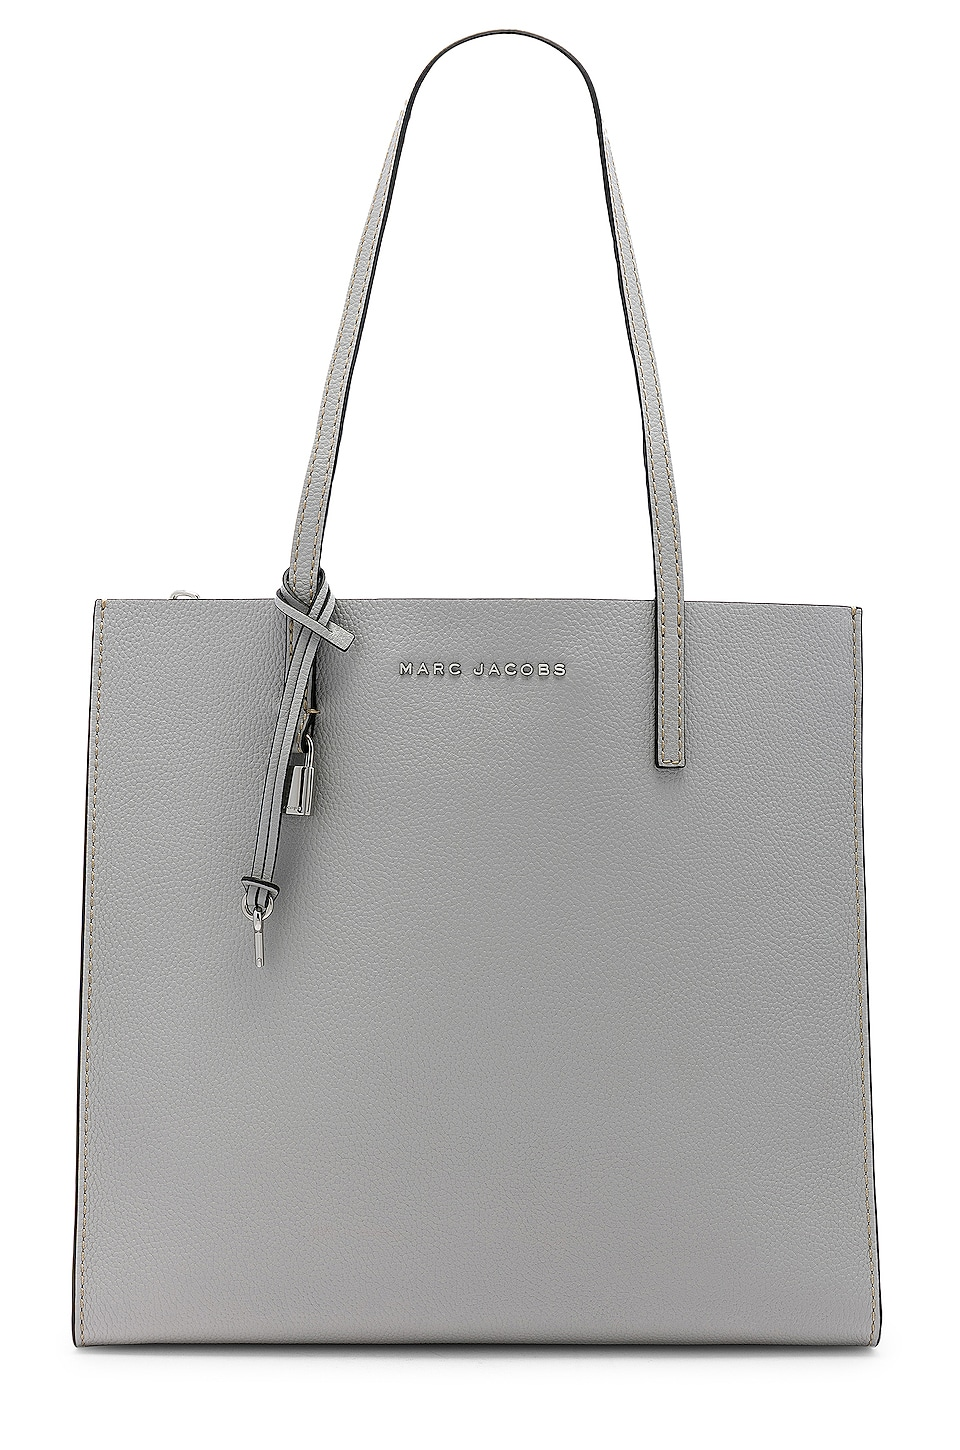 Marc Jacobs The Grind Tote in Ghost Grey